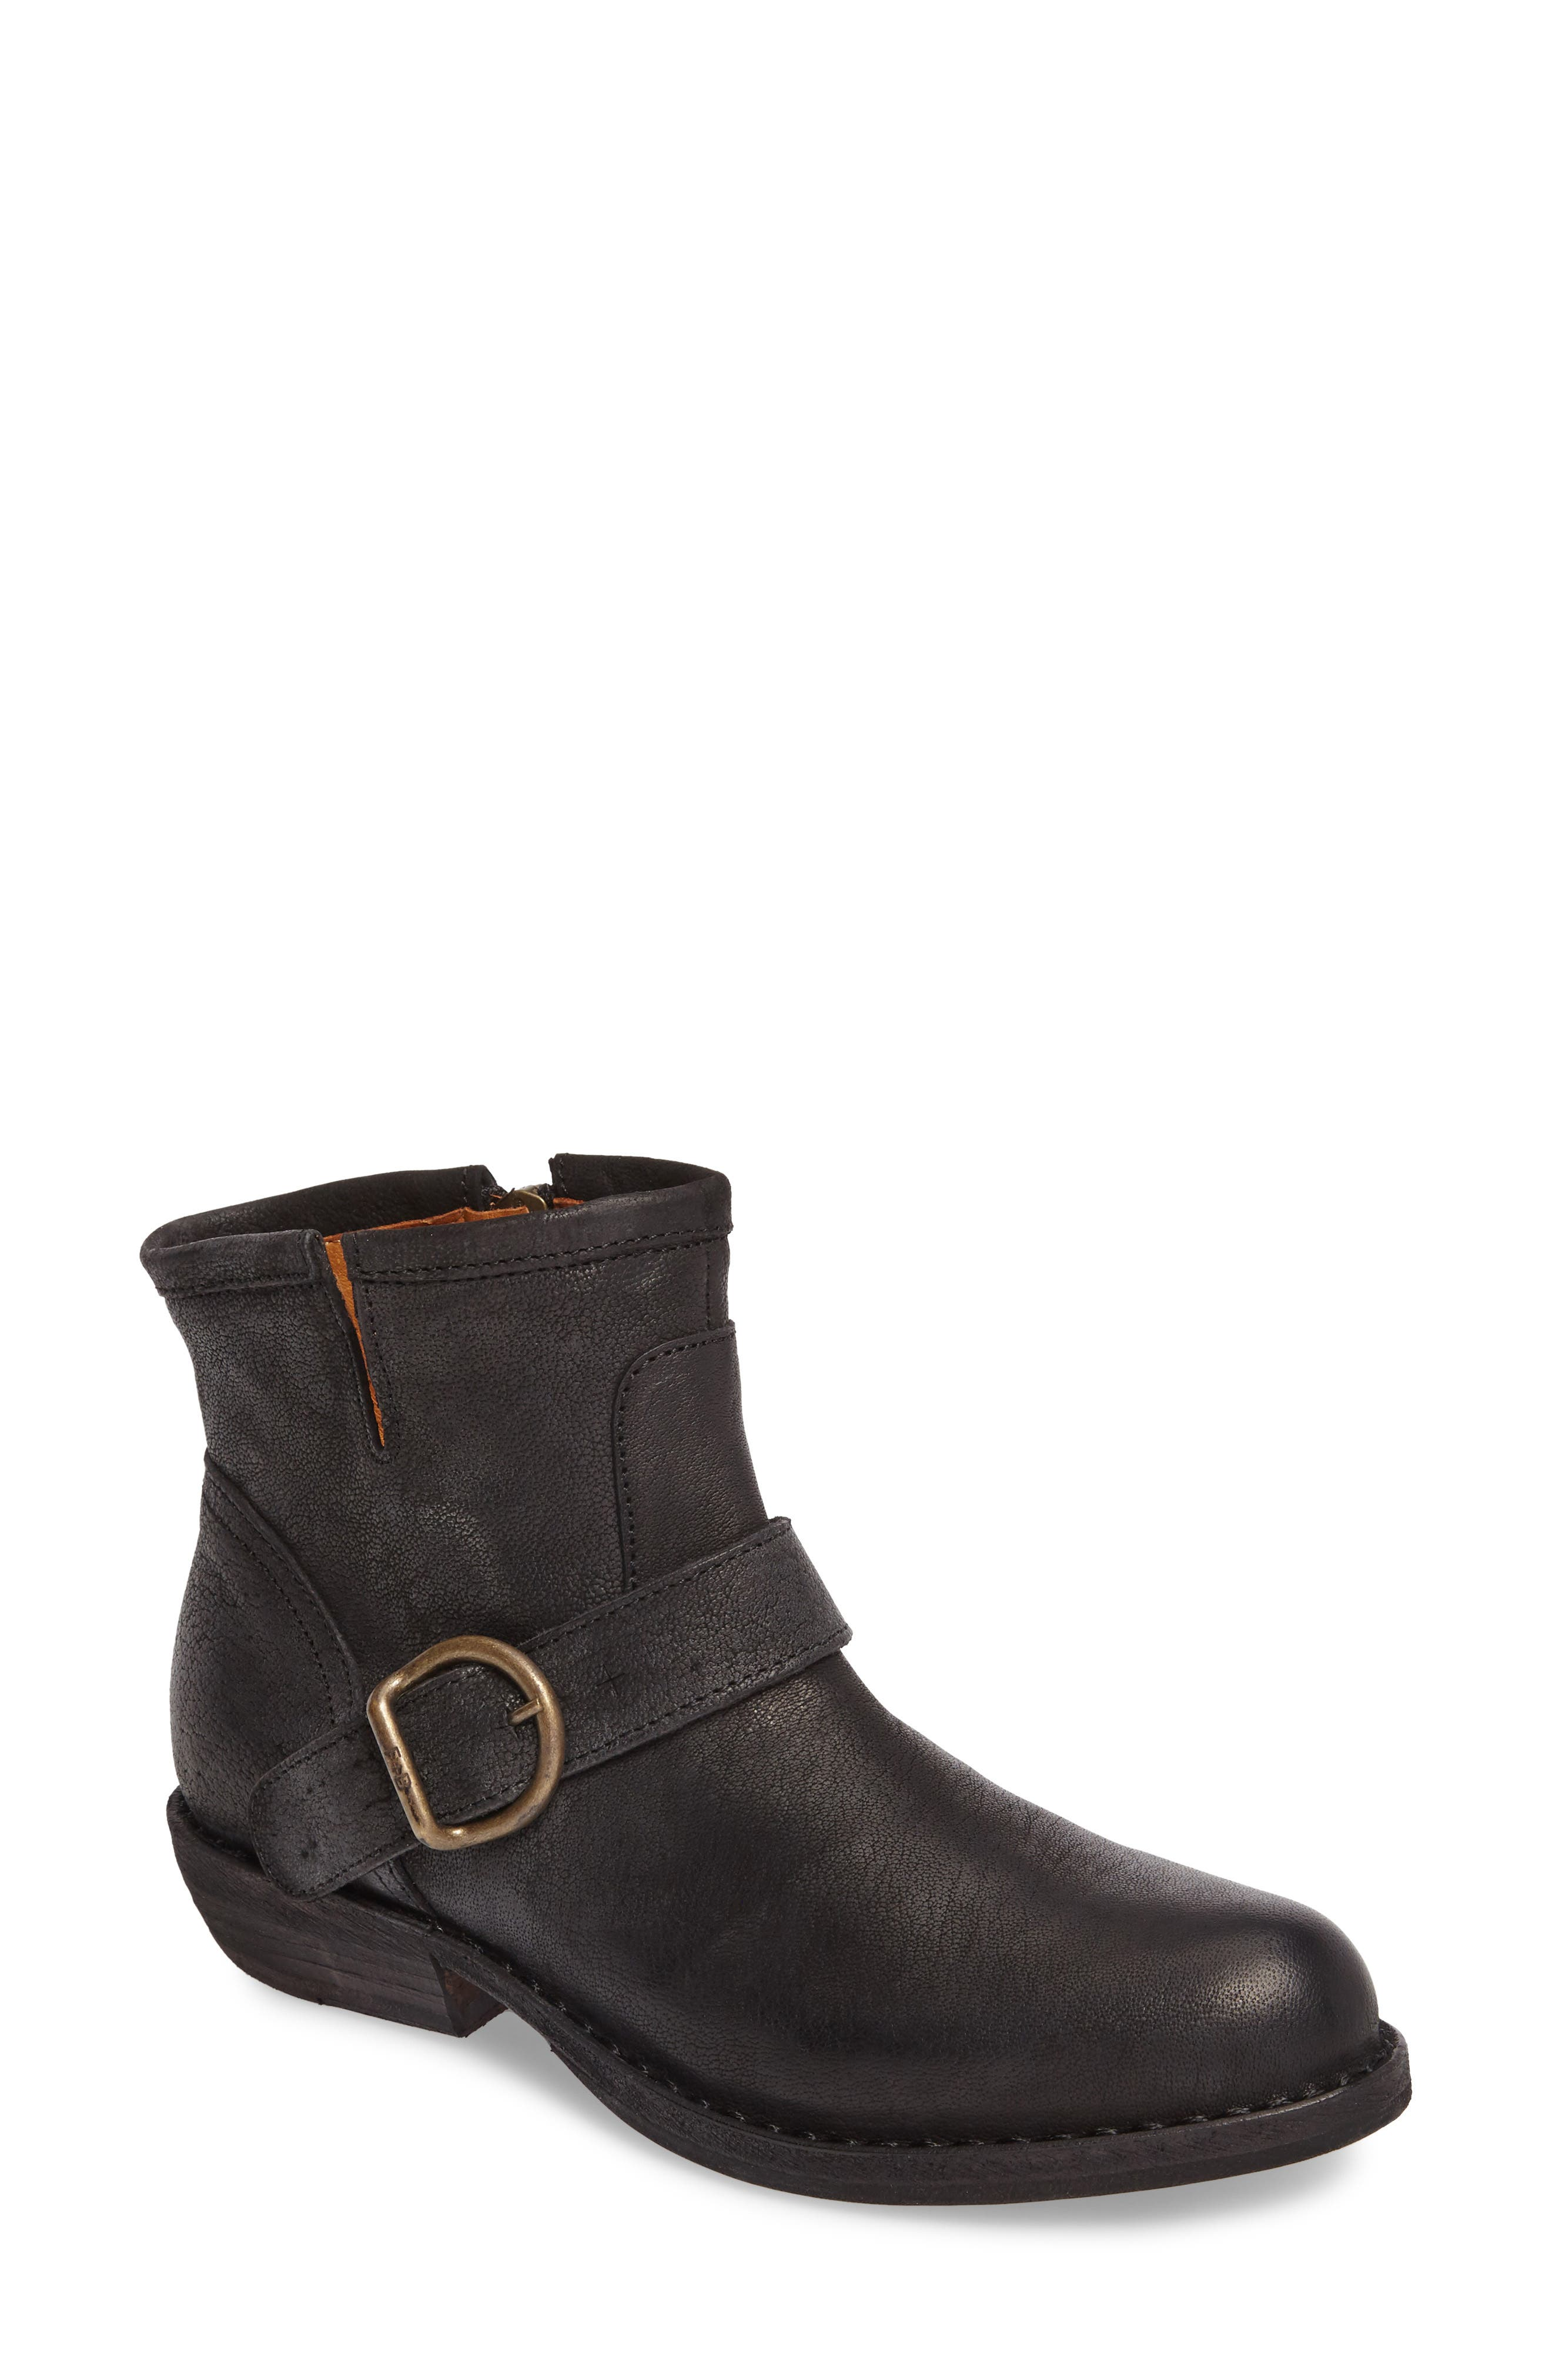 FIORENTINI + BAKER 'Chad' Textured Leather Bootie, Main, color, 002